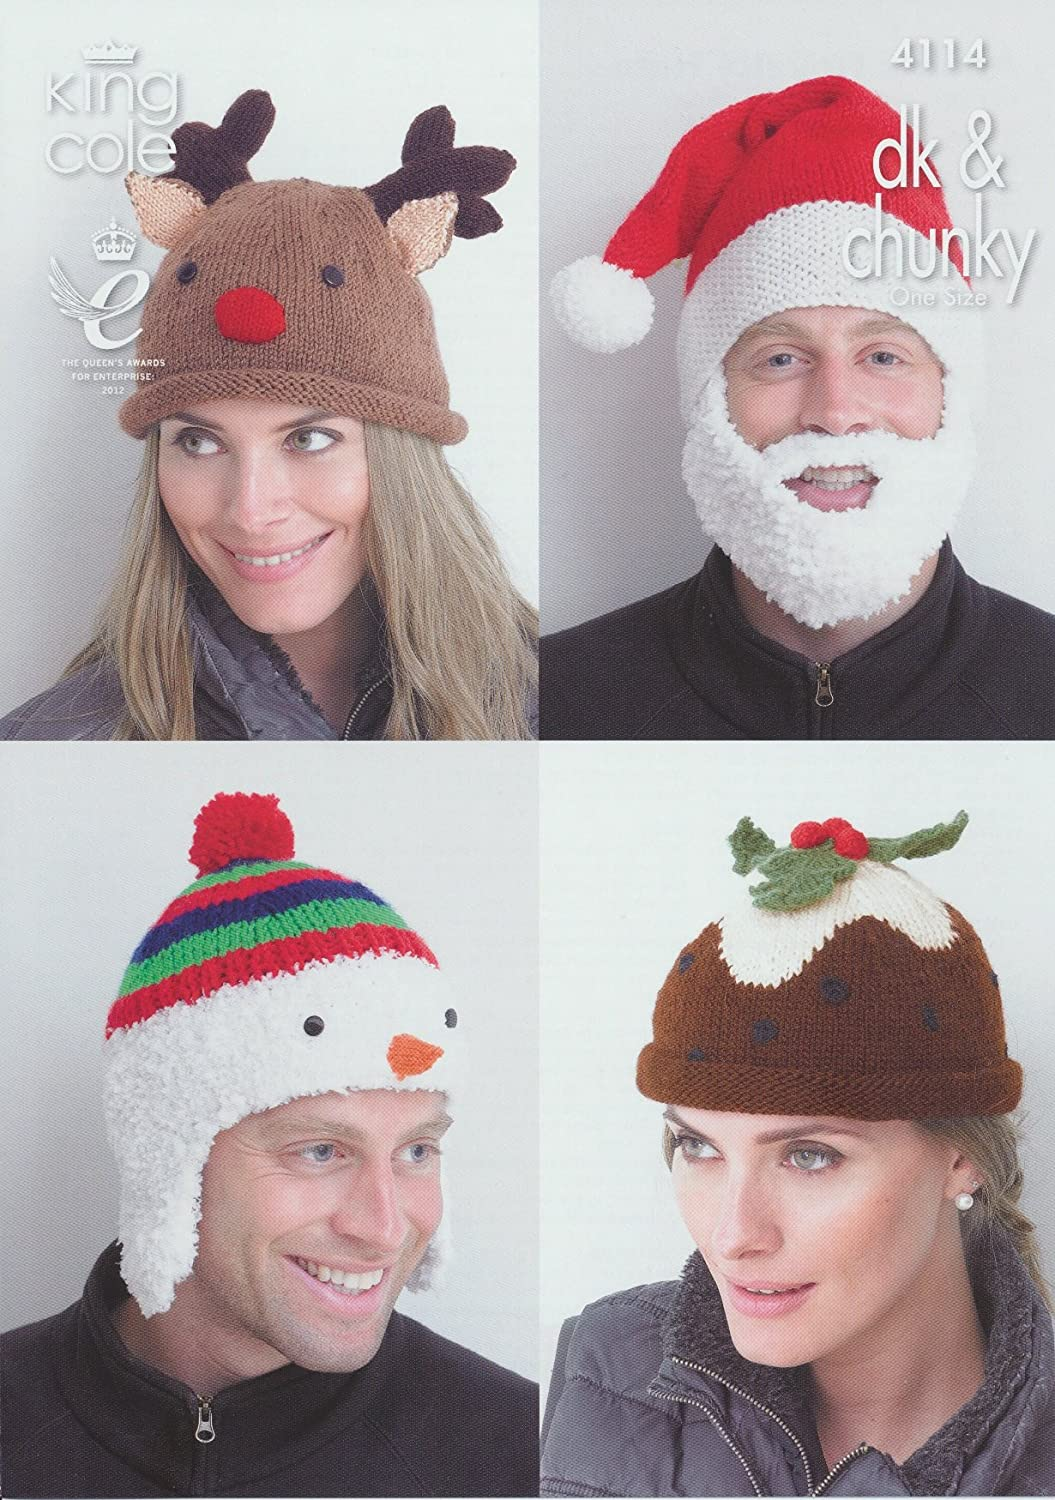 King Cole DK & Chunky Adults Christmas Hat Knitting Pattern Snowman ...